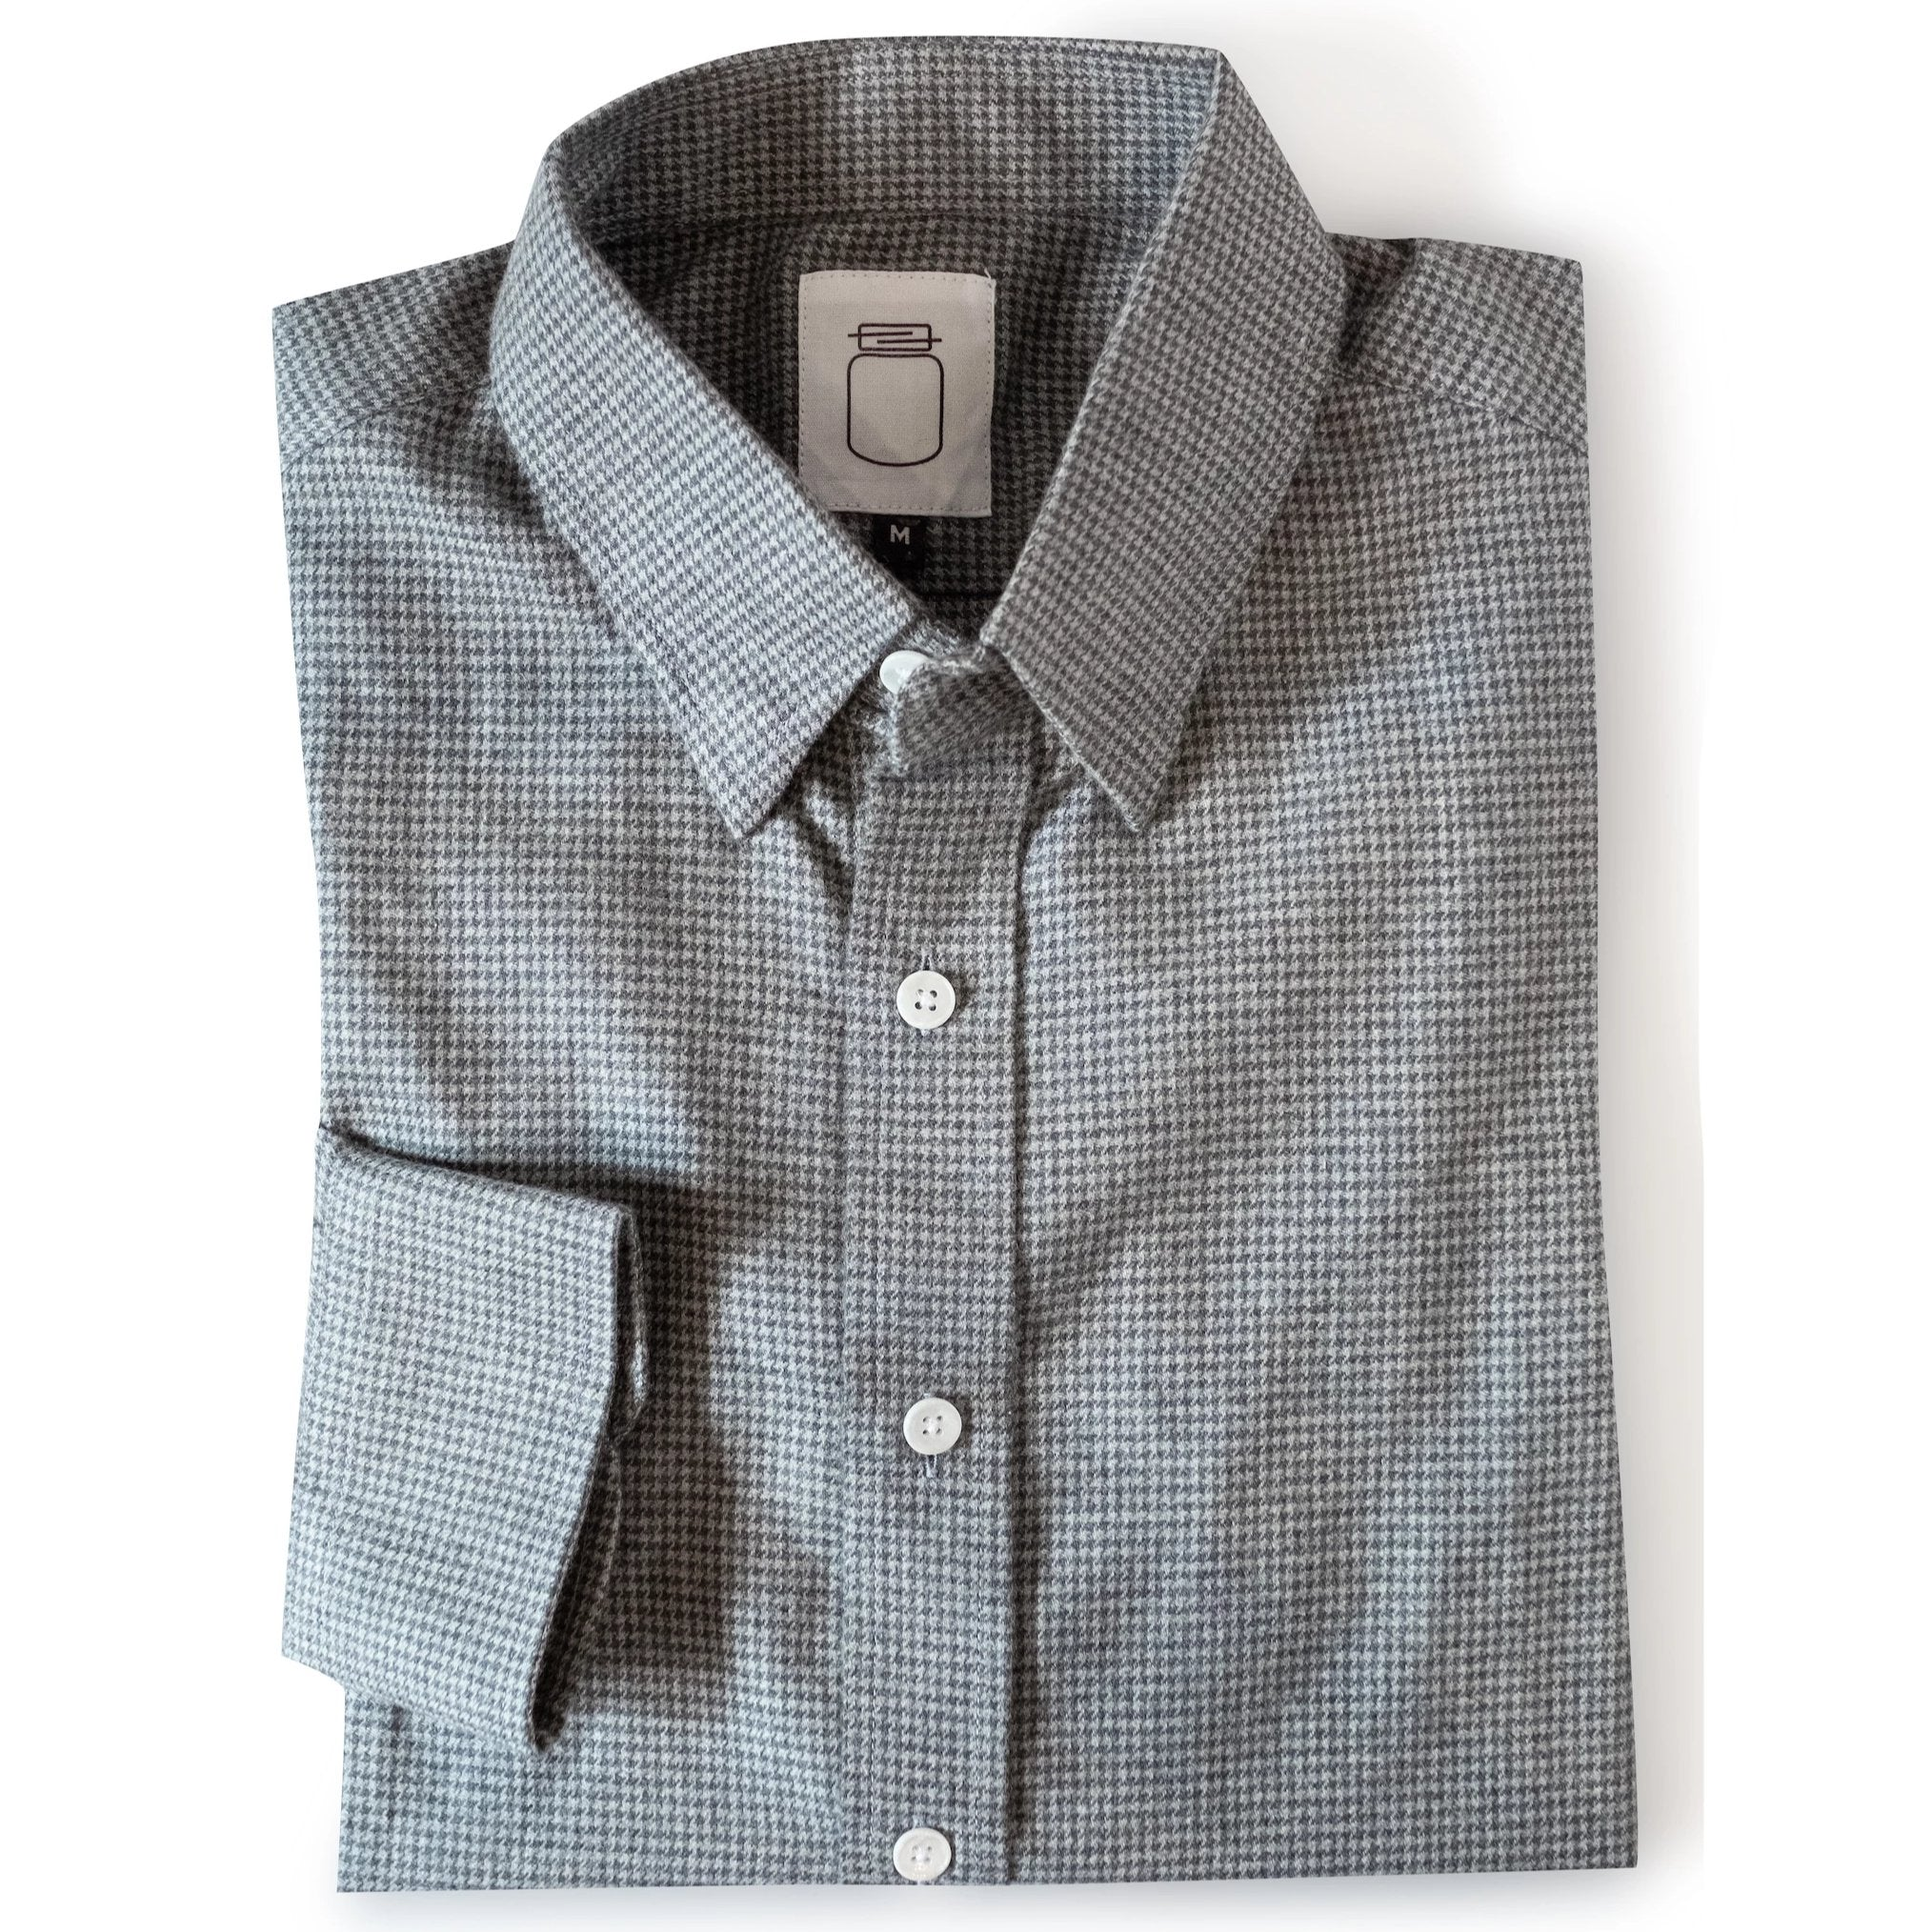 The Grey Houndstooth Brushed Cotton